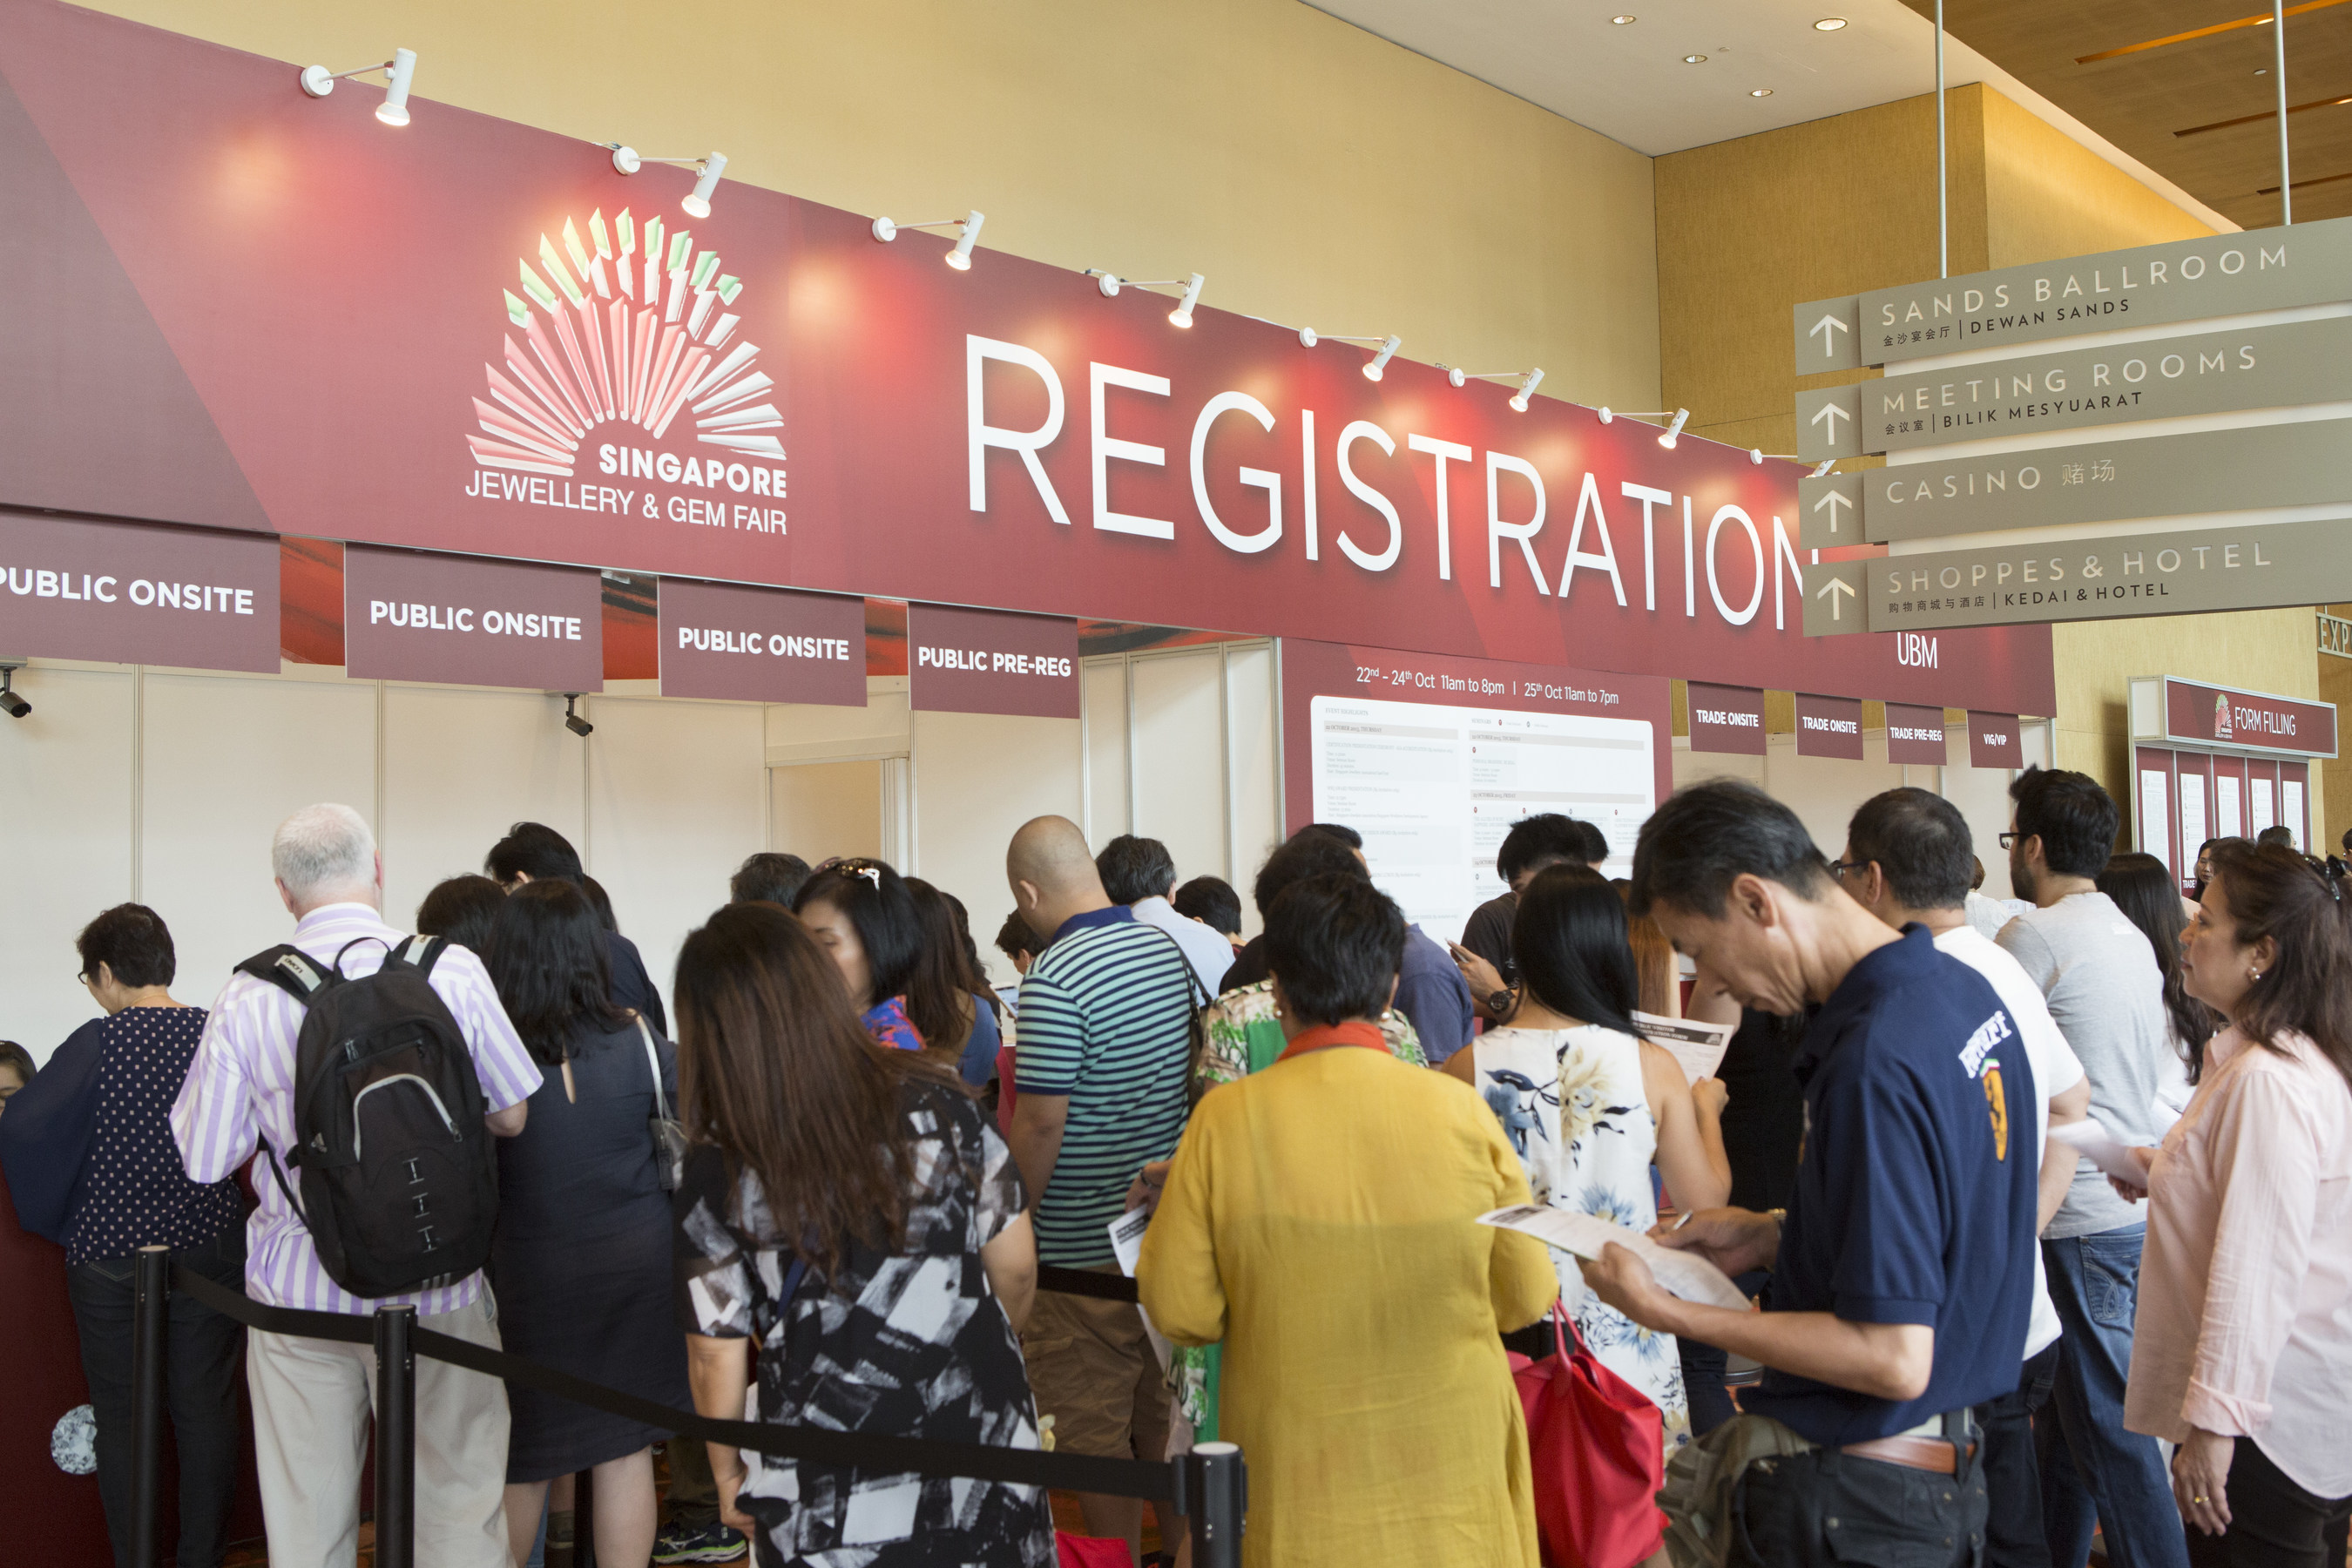 Singapore Jewellery & Gem Fair 2015 - the most significant fine jewellery event in the region